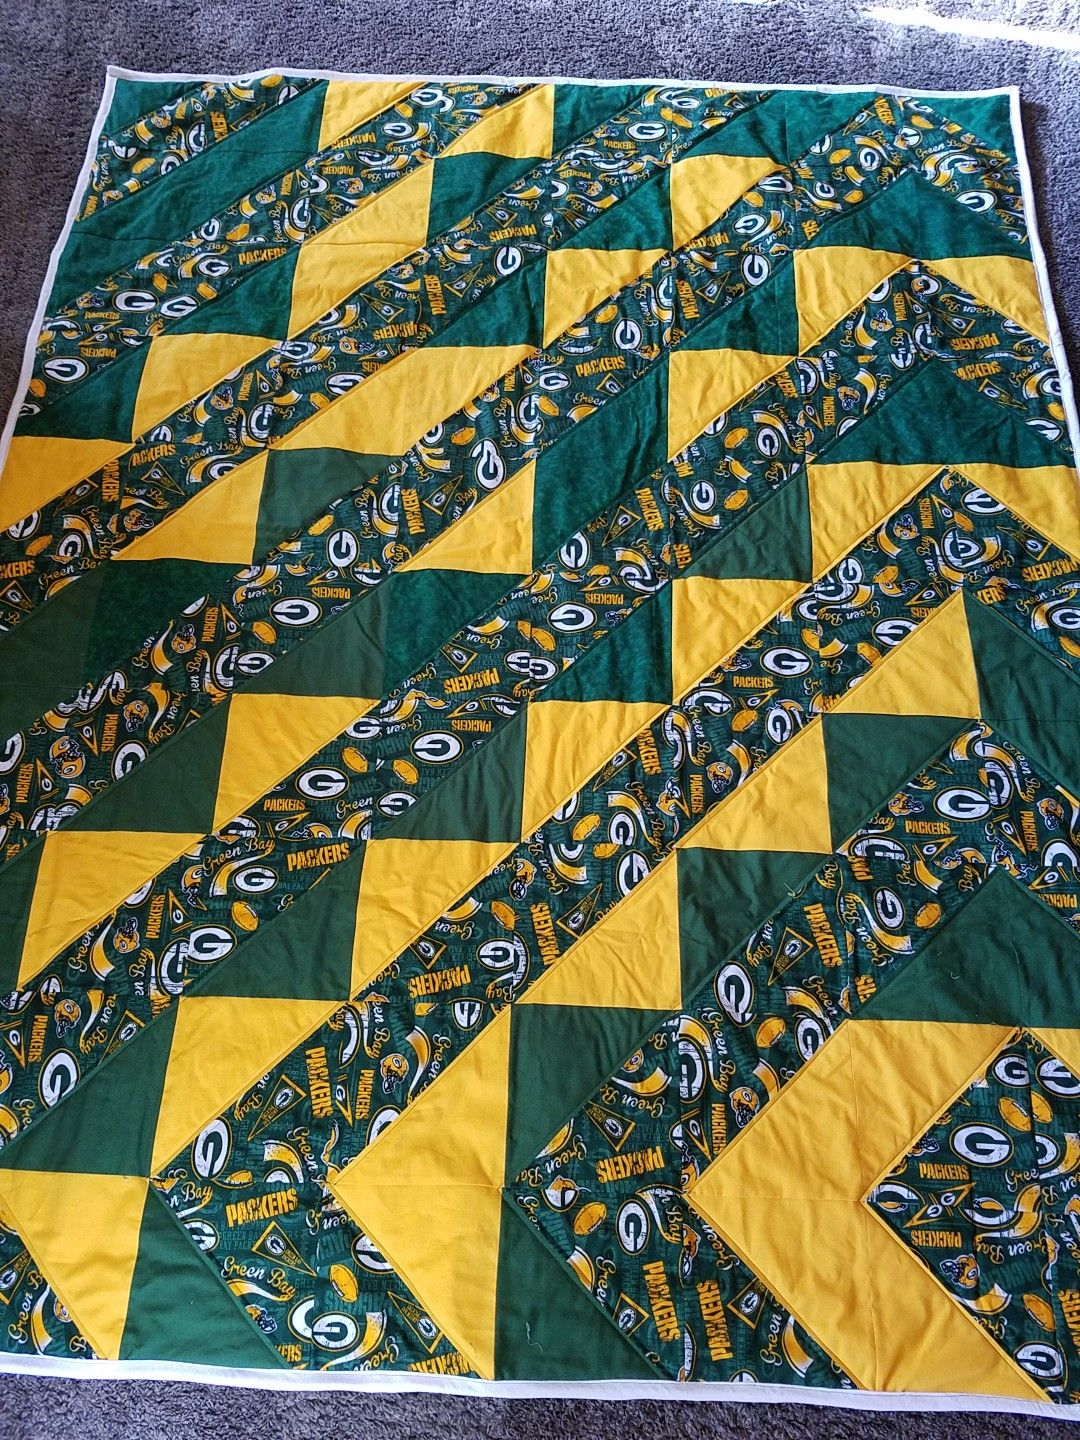 Green Bay Packers Quilt Hst Quilt Quilts Green Bay Green Bay Packers